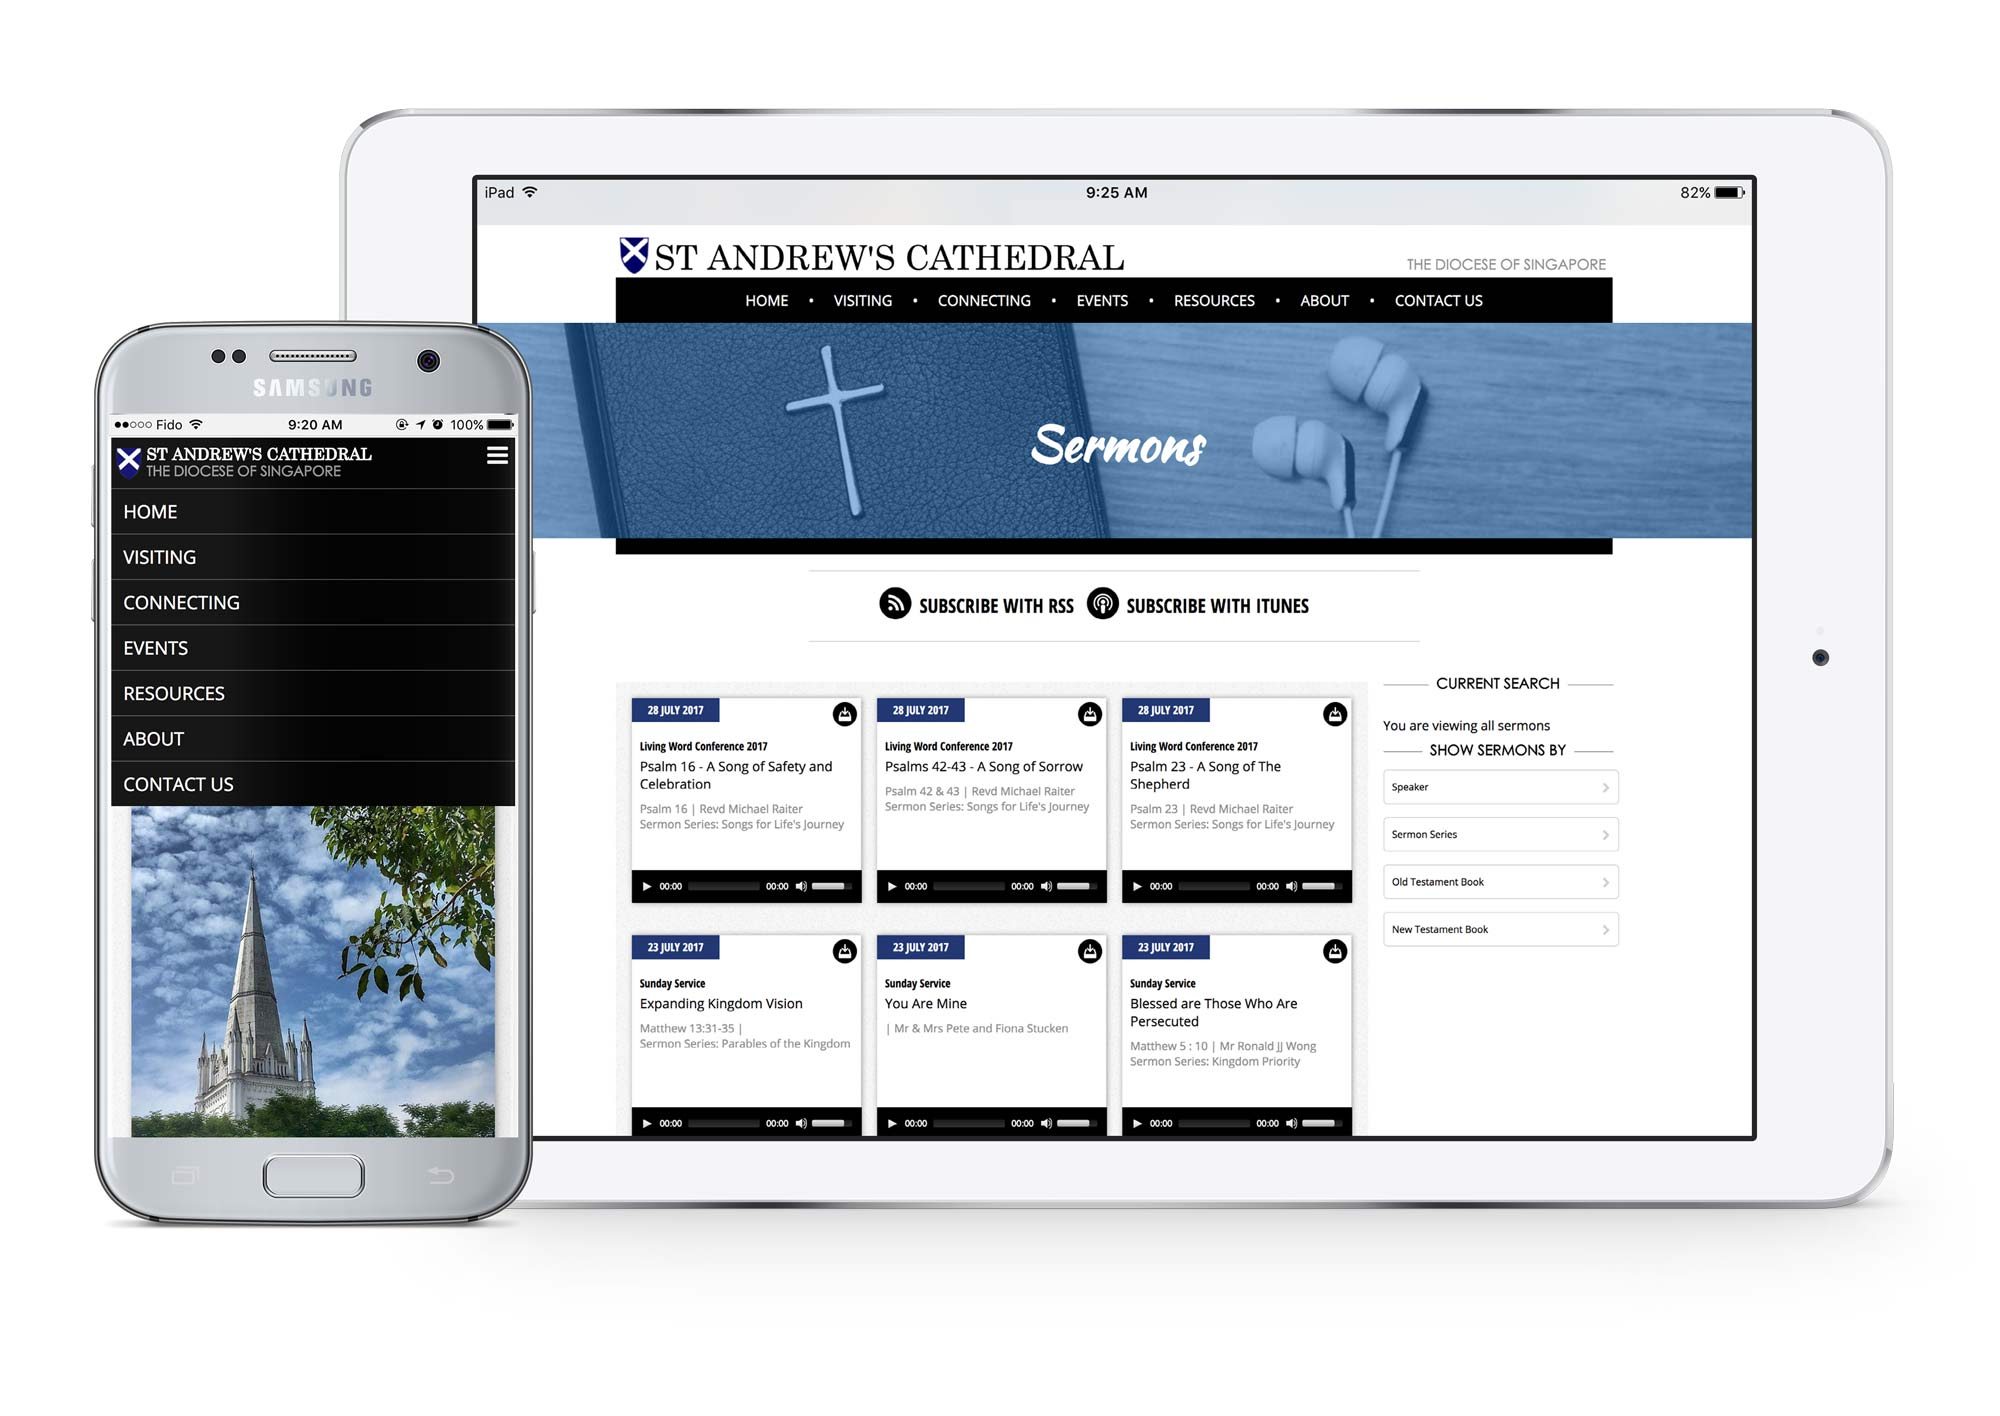 Screenshot of St. Andrew's Cathedral website on tablet and mobile